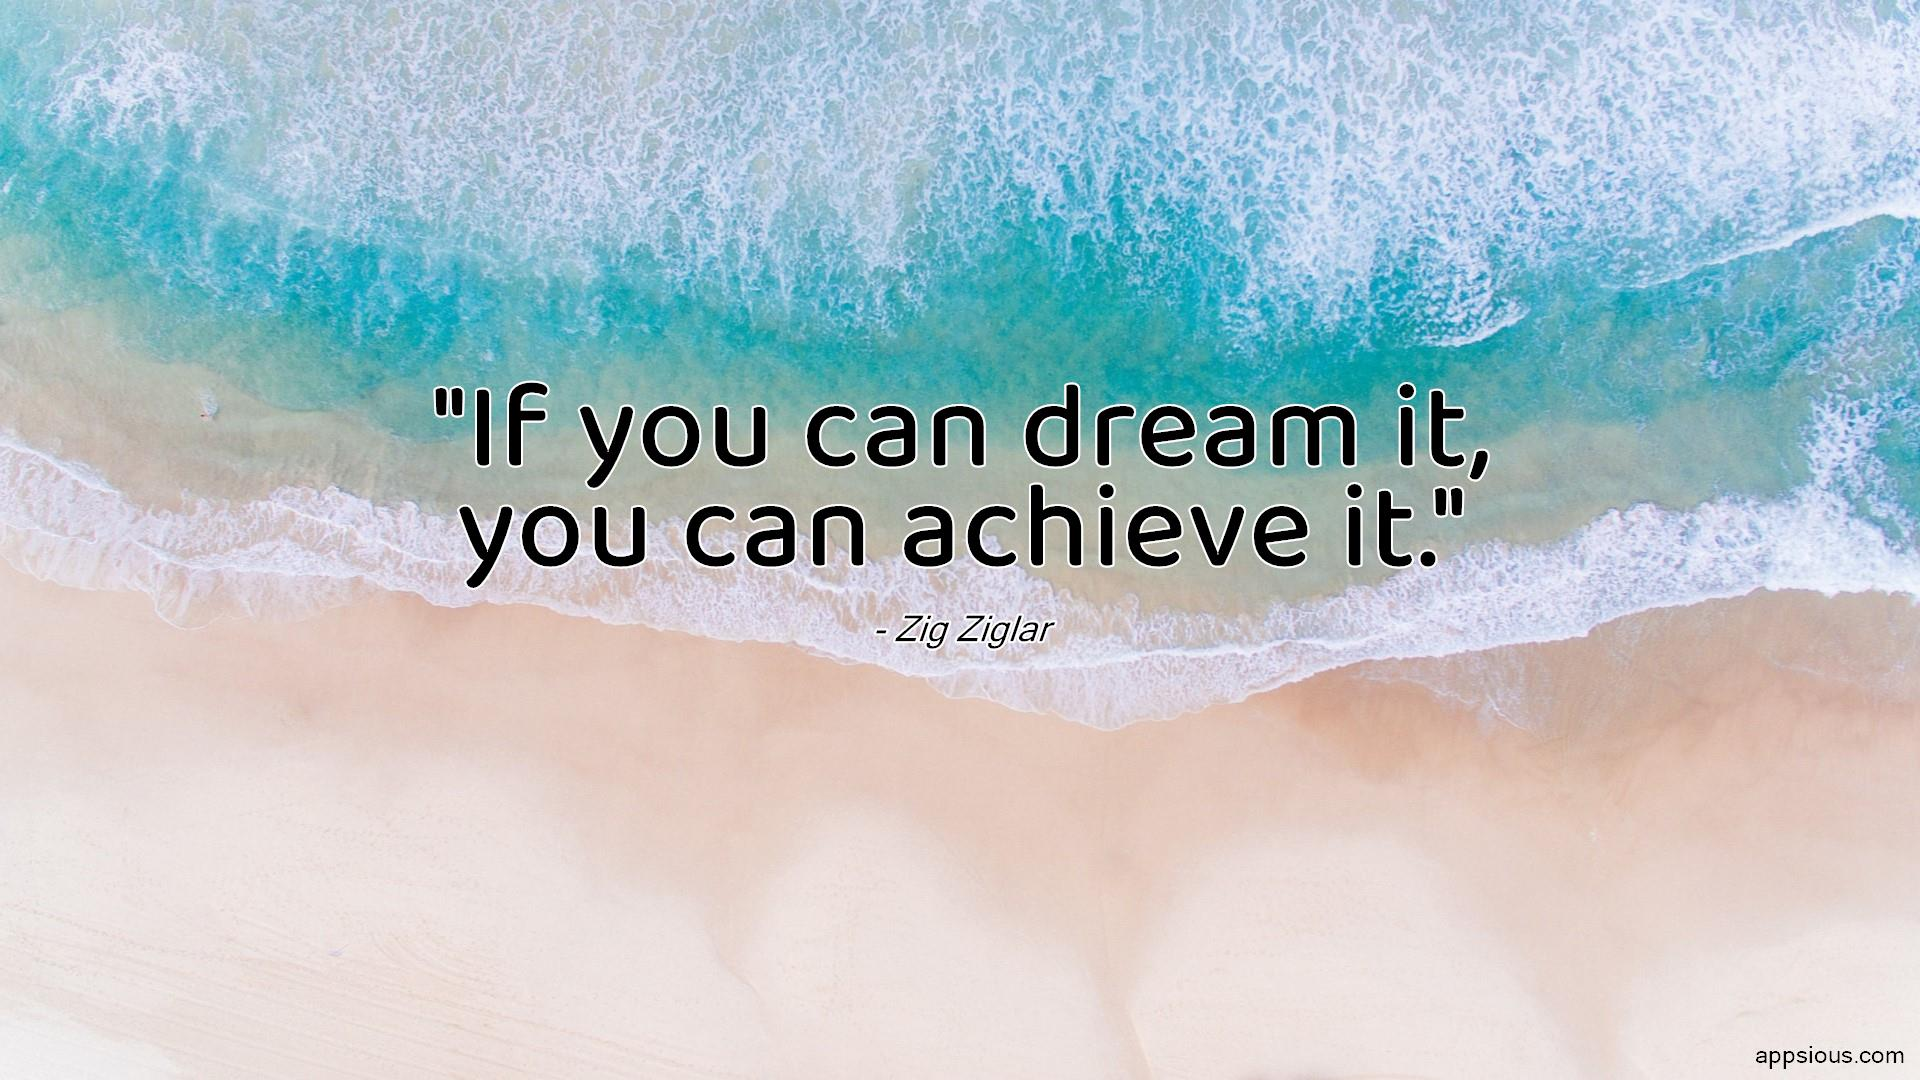 If you can dream it, you can achieve it.